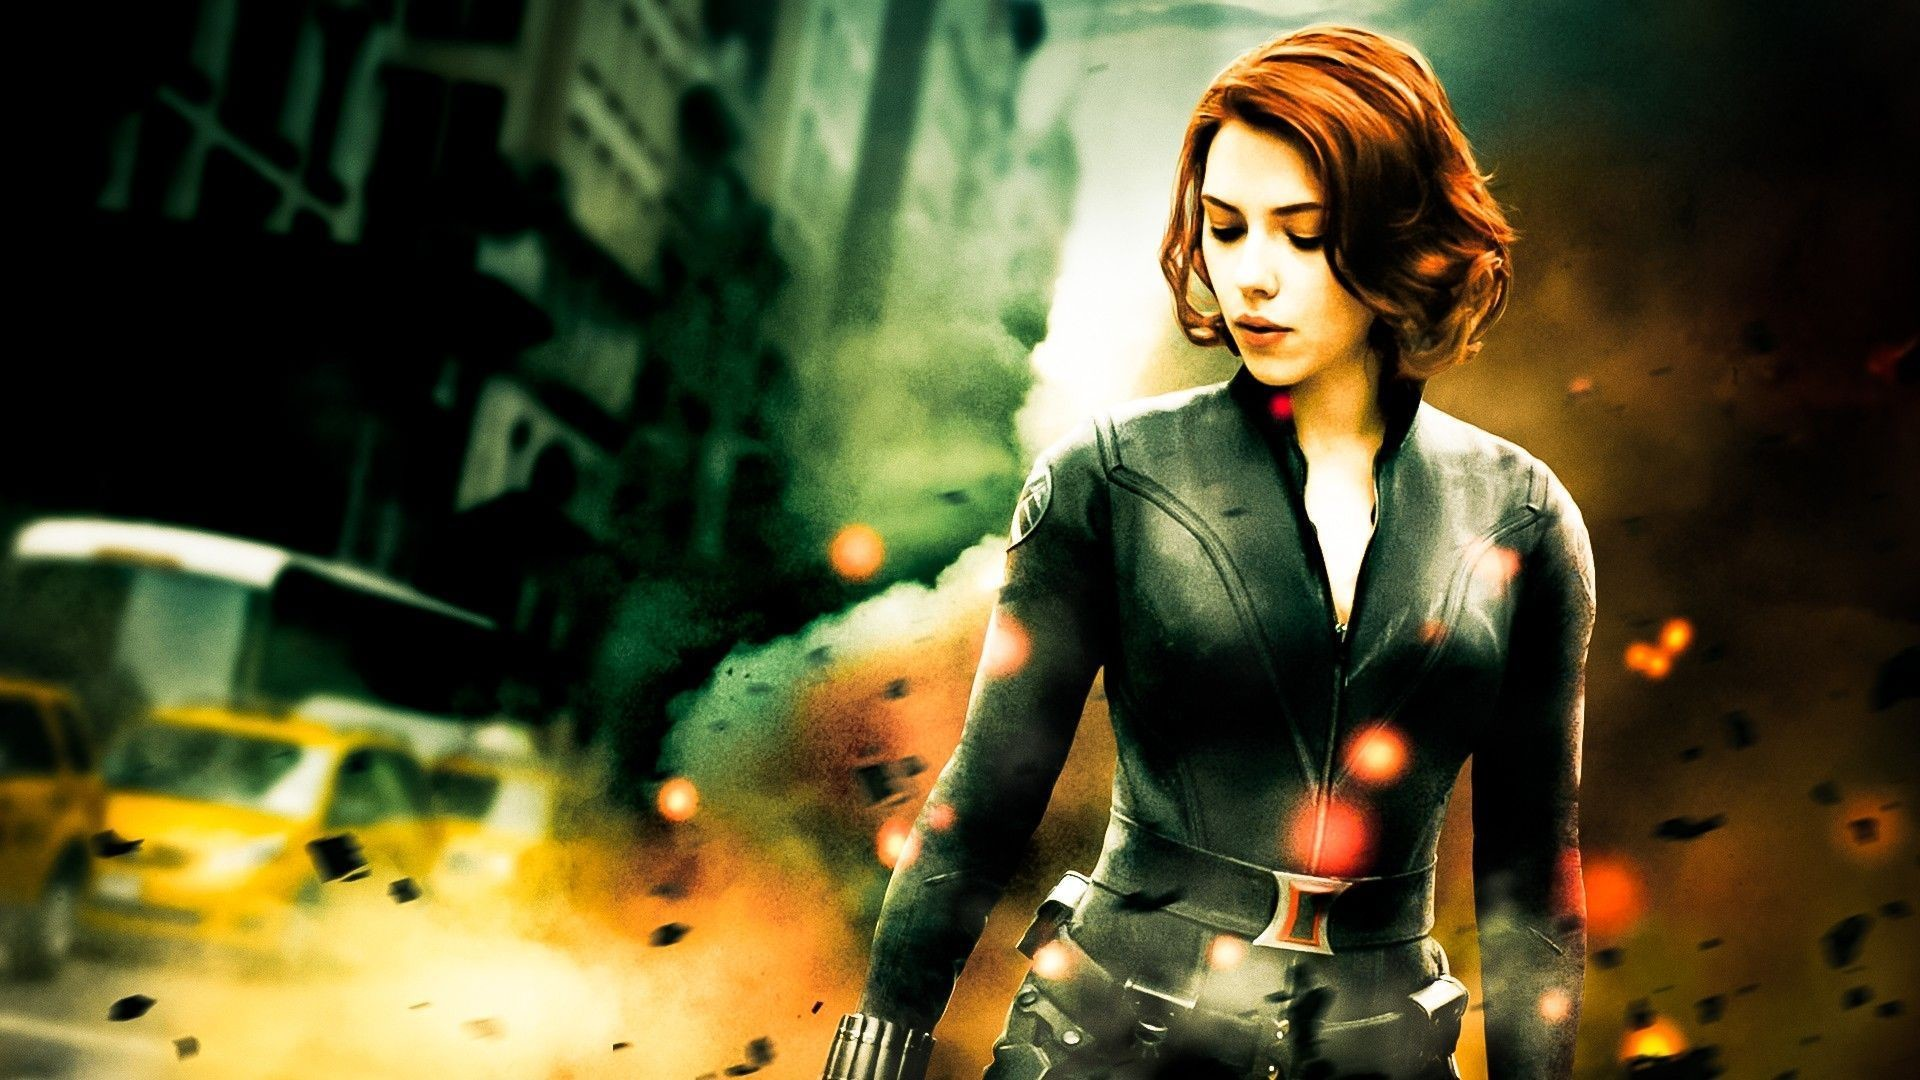 Scarlett Johansson Wallpaper: Black Widow Wallpapers Scarlett Johansson (76+ Images